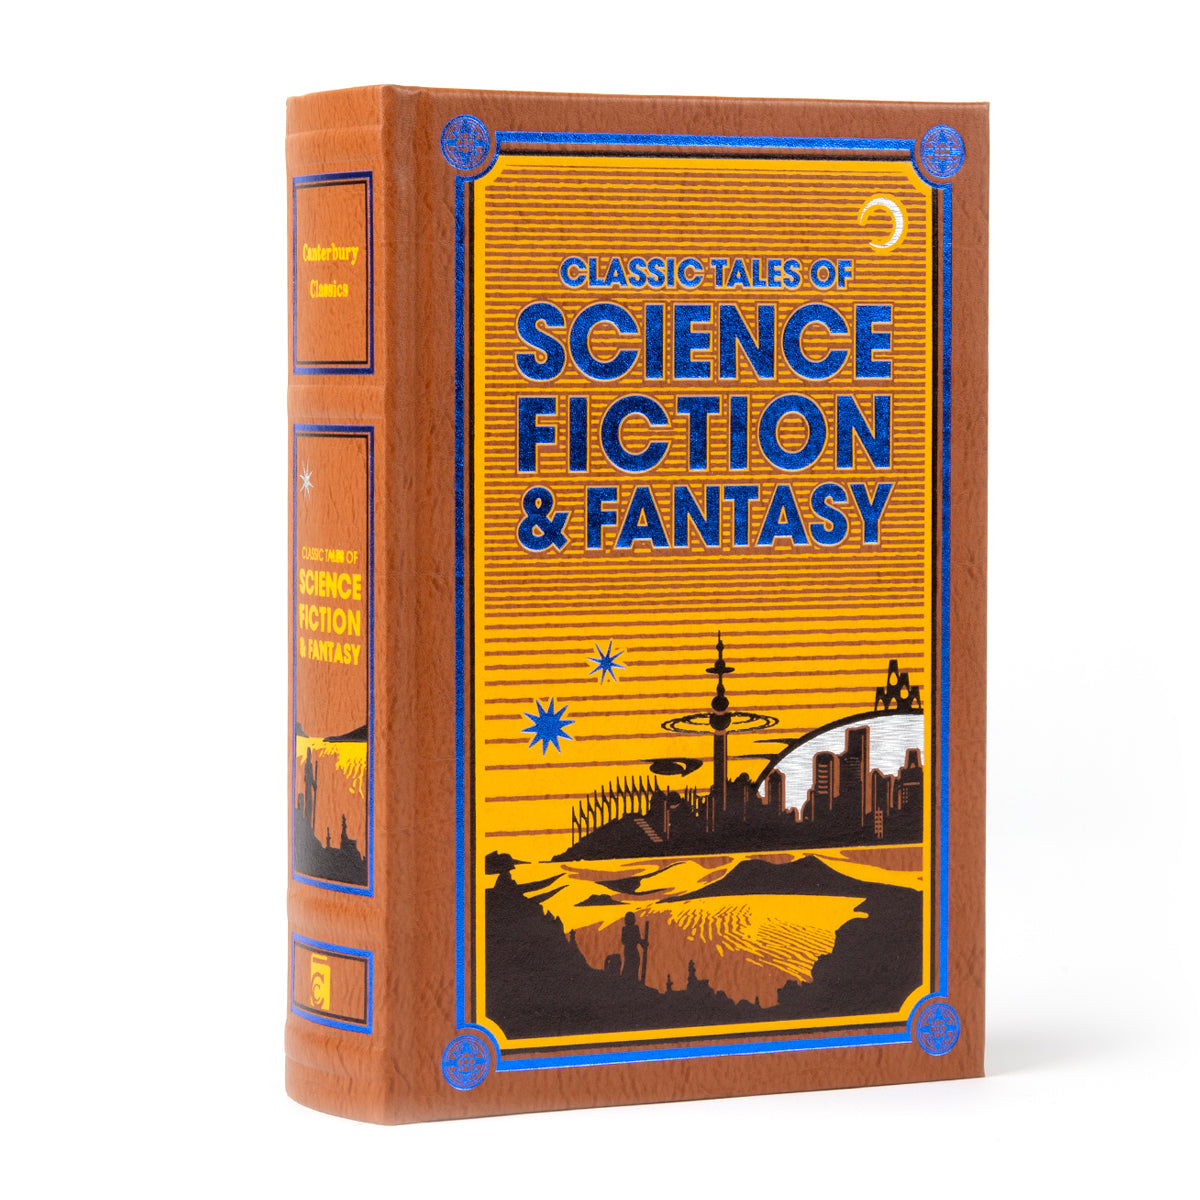 Classic Tales of Science Fiction & Fantasy by Canterbury Classics